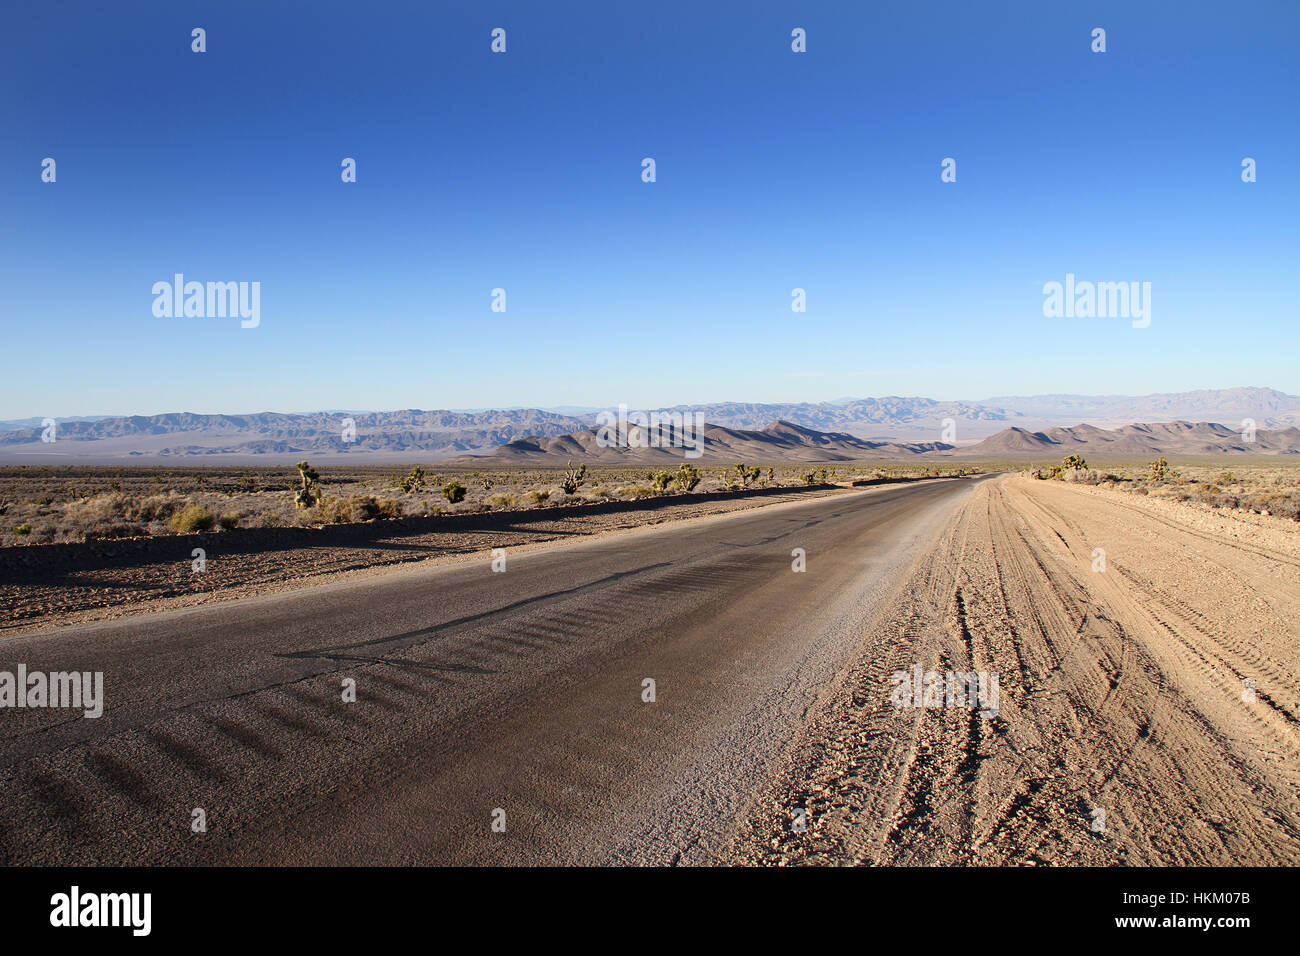 A desolate road in the Nevada desert. - Stock Image